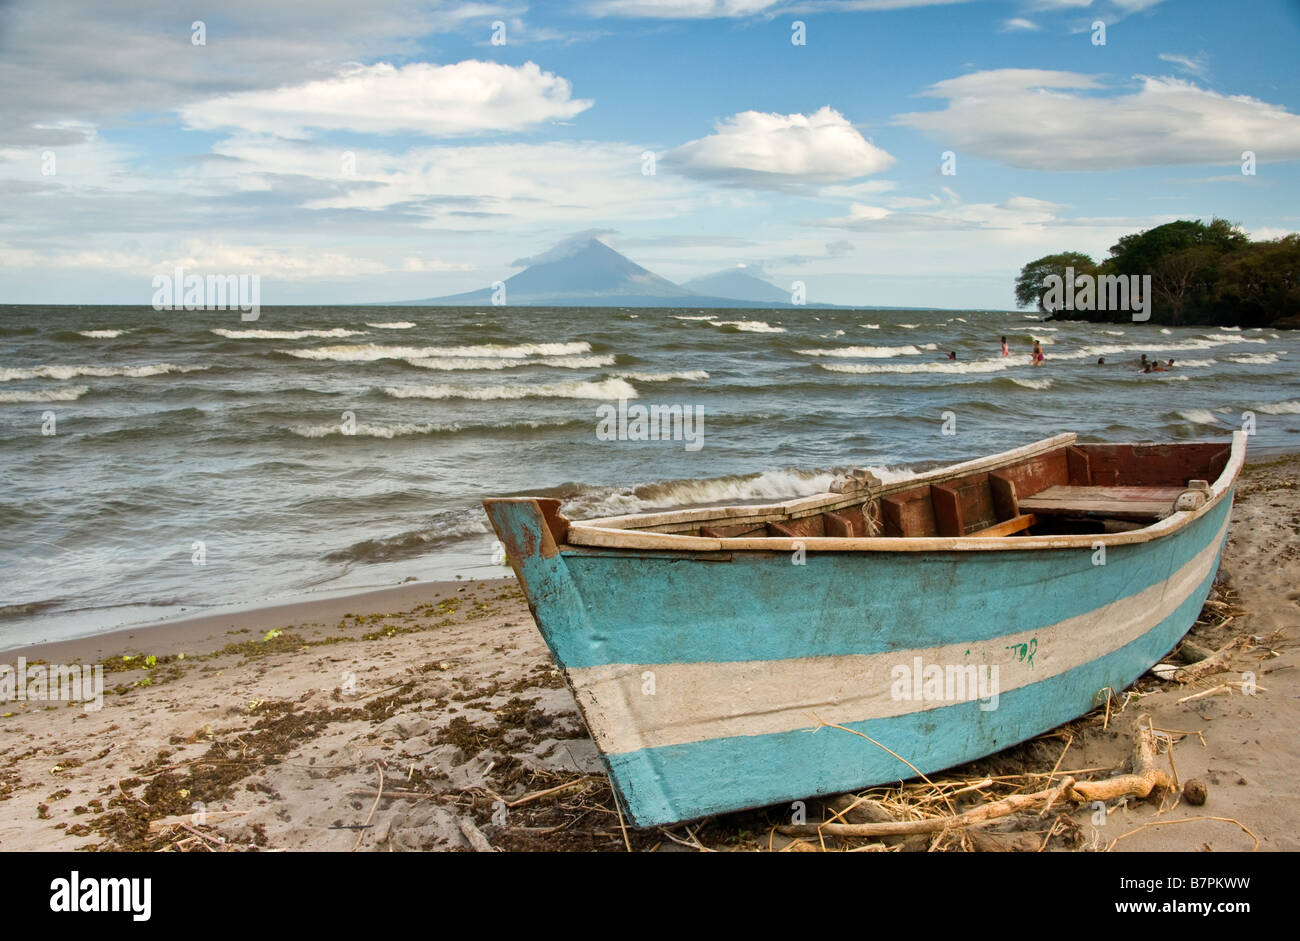 Lake Nicaragua shore north of Rivas with fishing boat, Concepcion and Maderas volcanoes on Ometepe Island in background - Stock Image